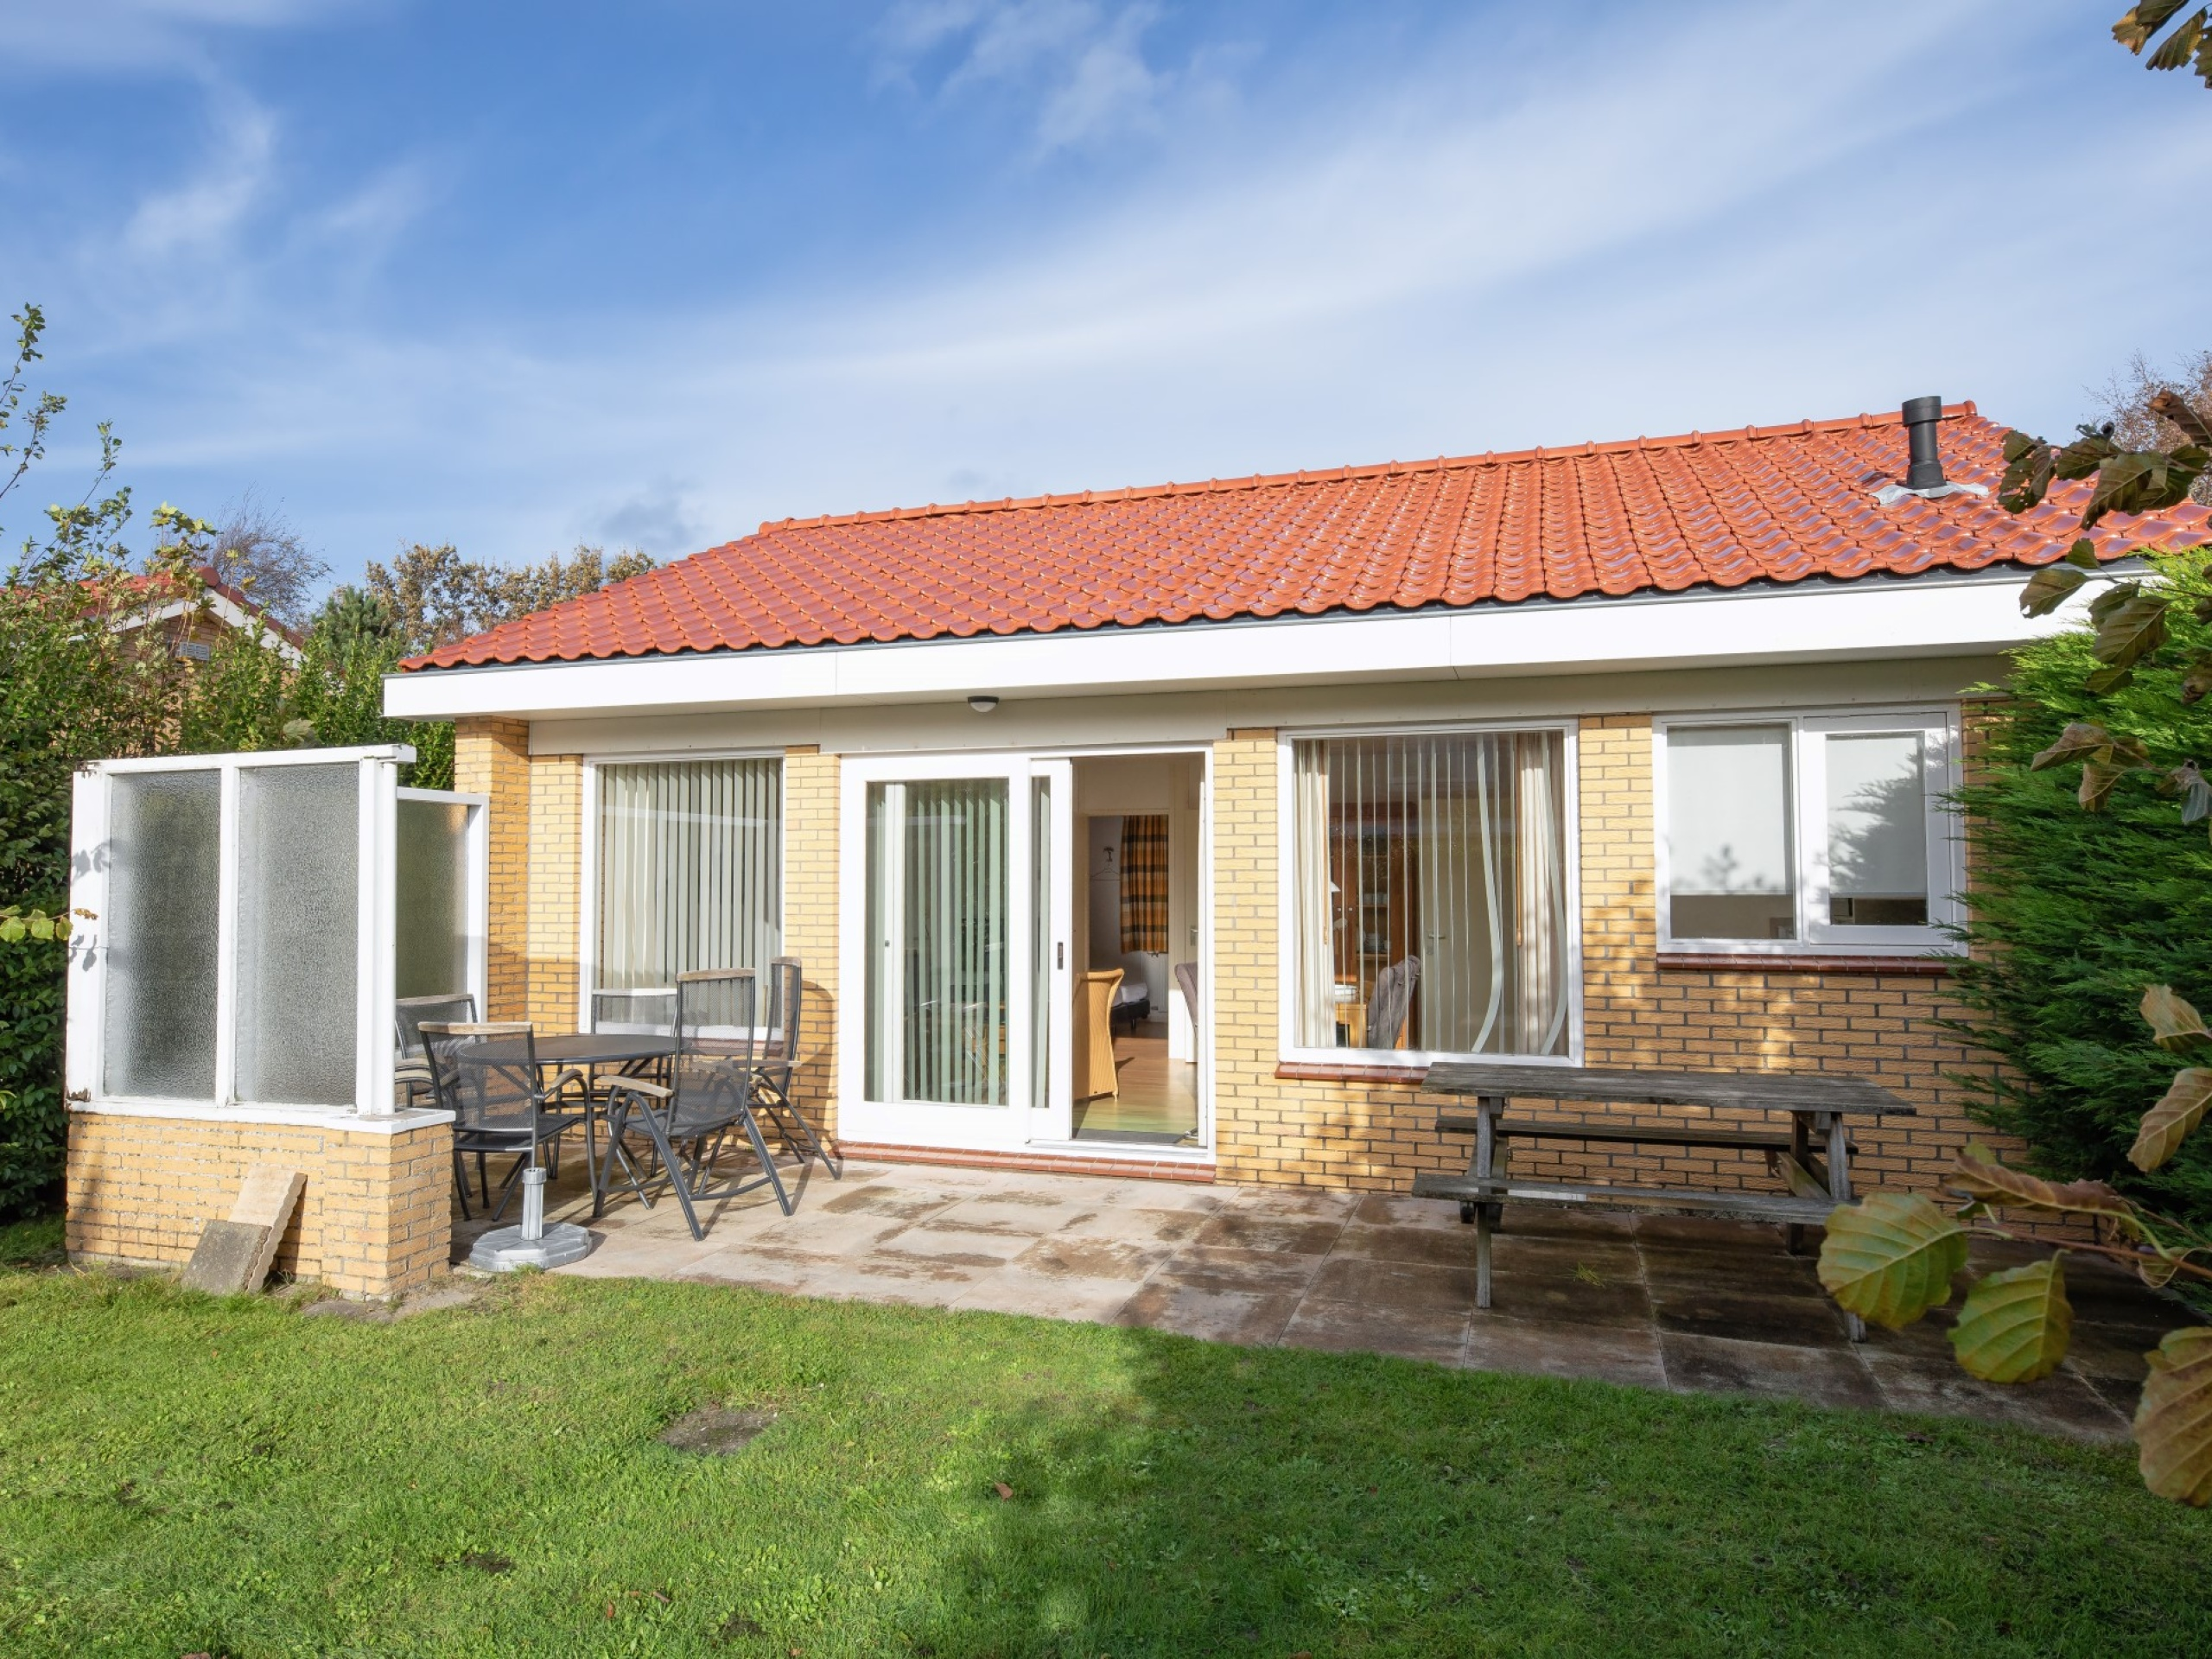 Holiday home near the National Park of the Dunes of Texel and the North Sea